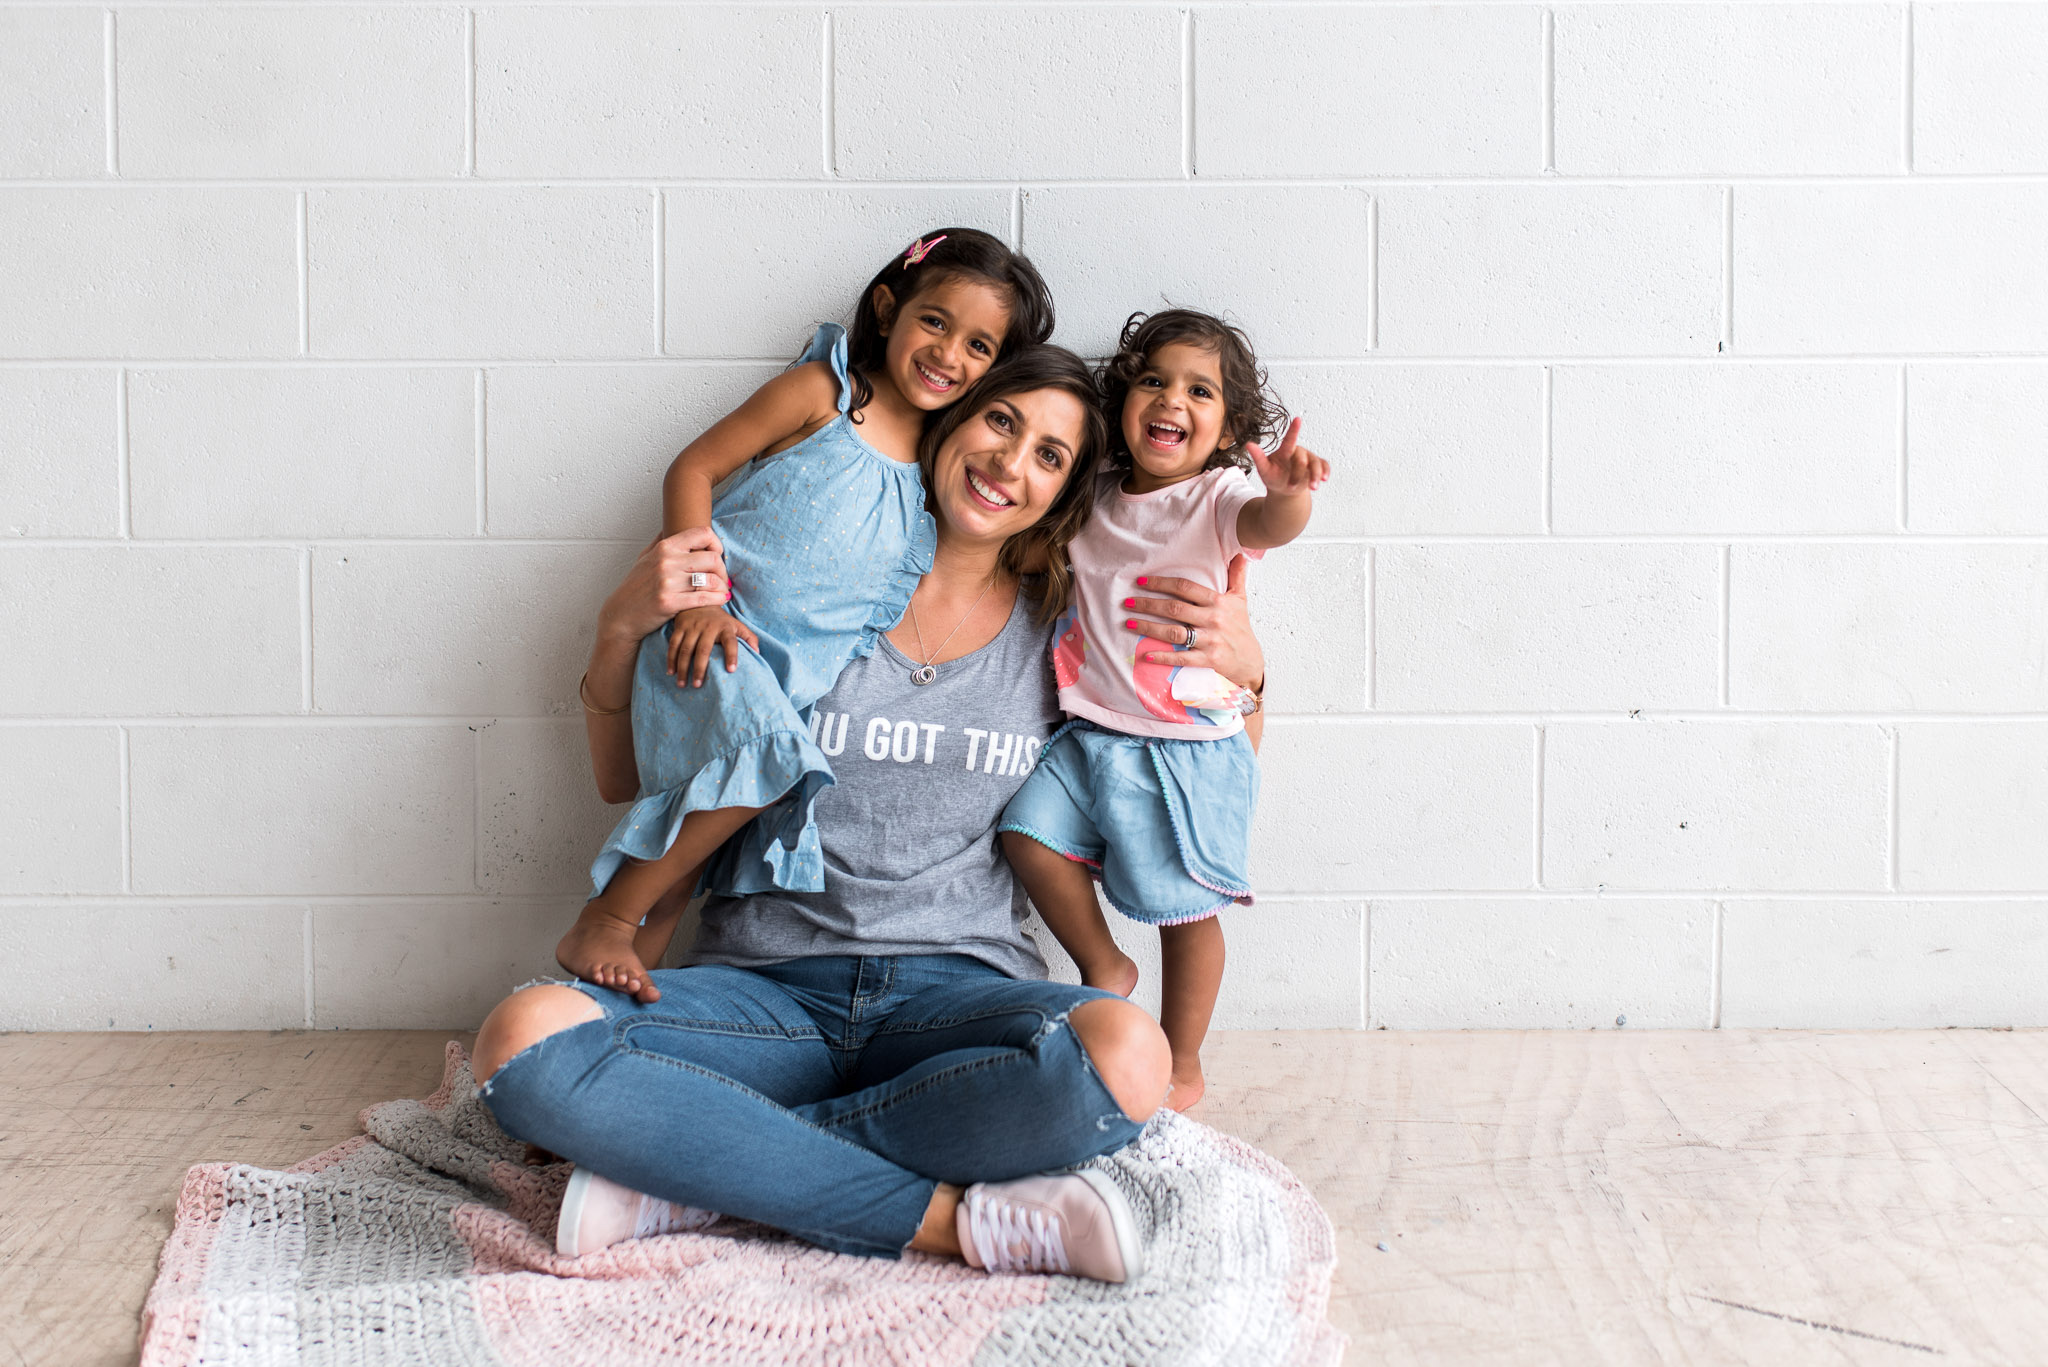 mumlife australia - personal branding photography session with Jess Worrall Photography